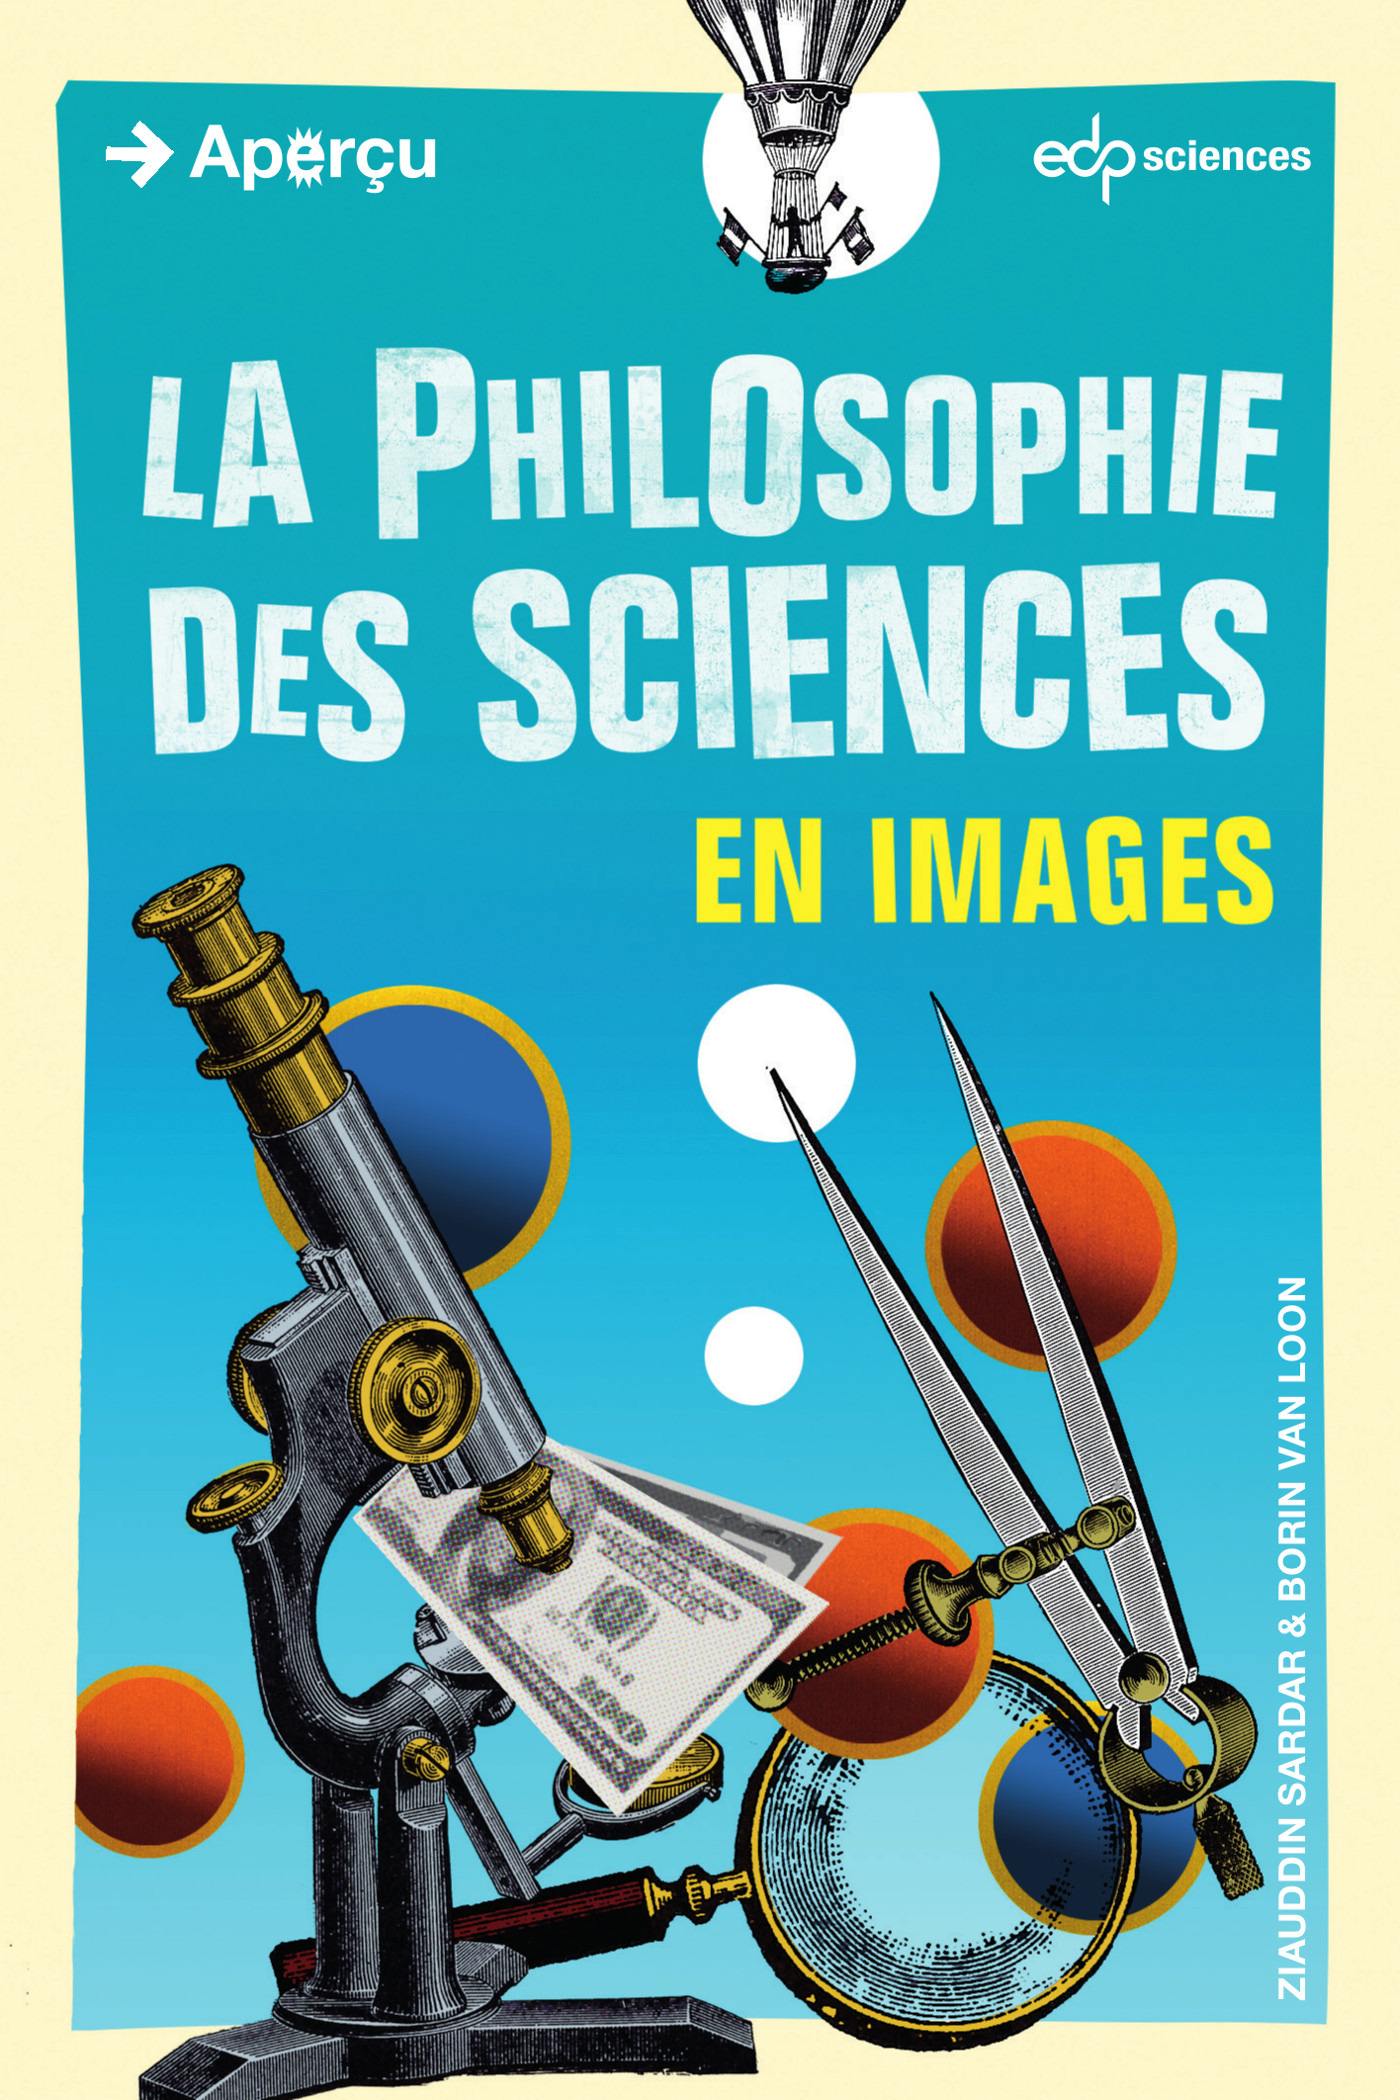 La philosophie des sciences...